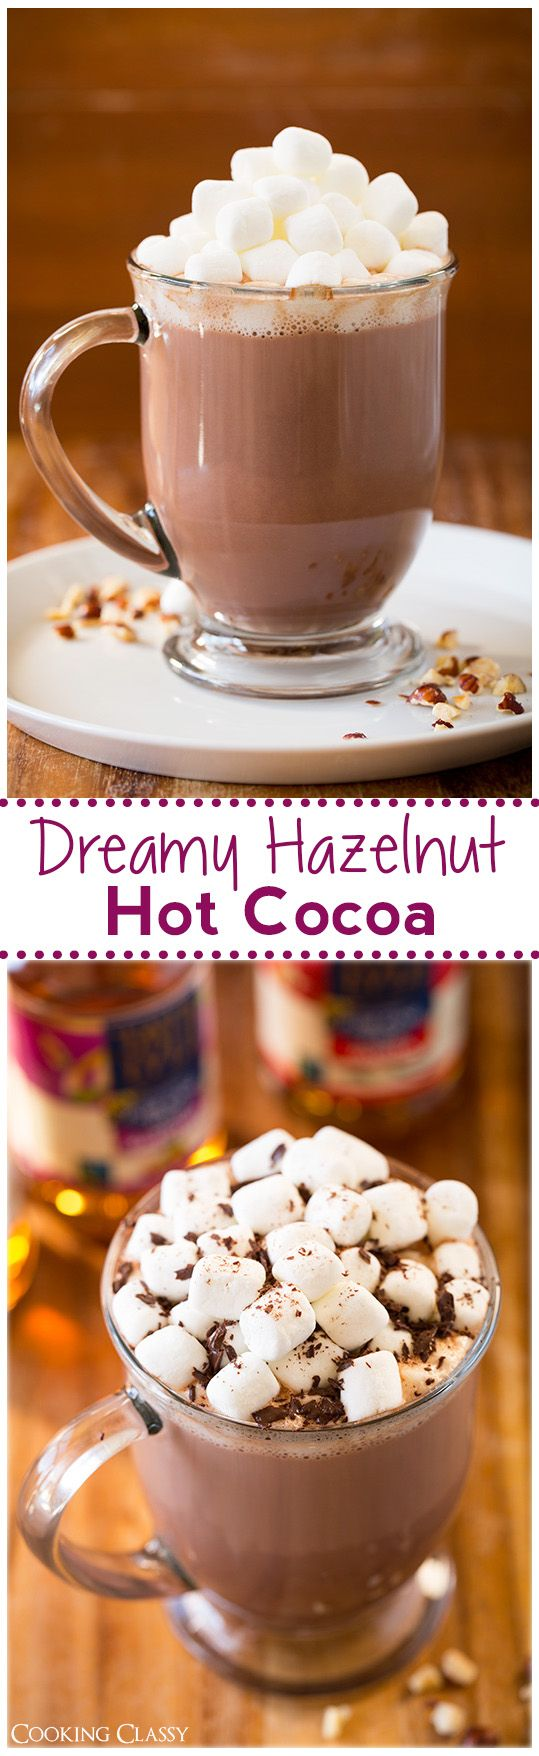 Dreamy Hazelnut Hot Cocoa recipe via @cookingclassy